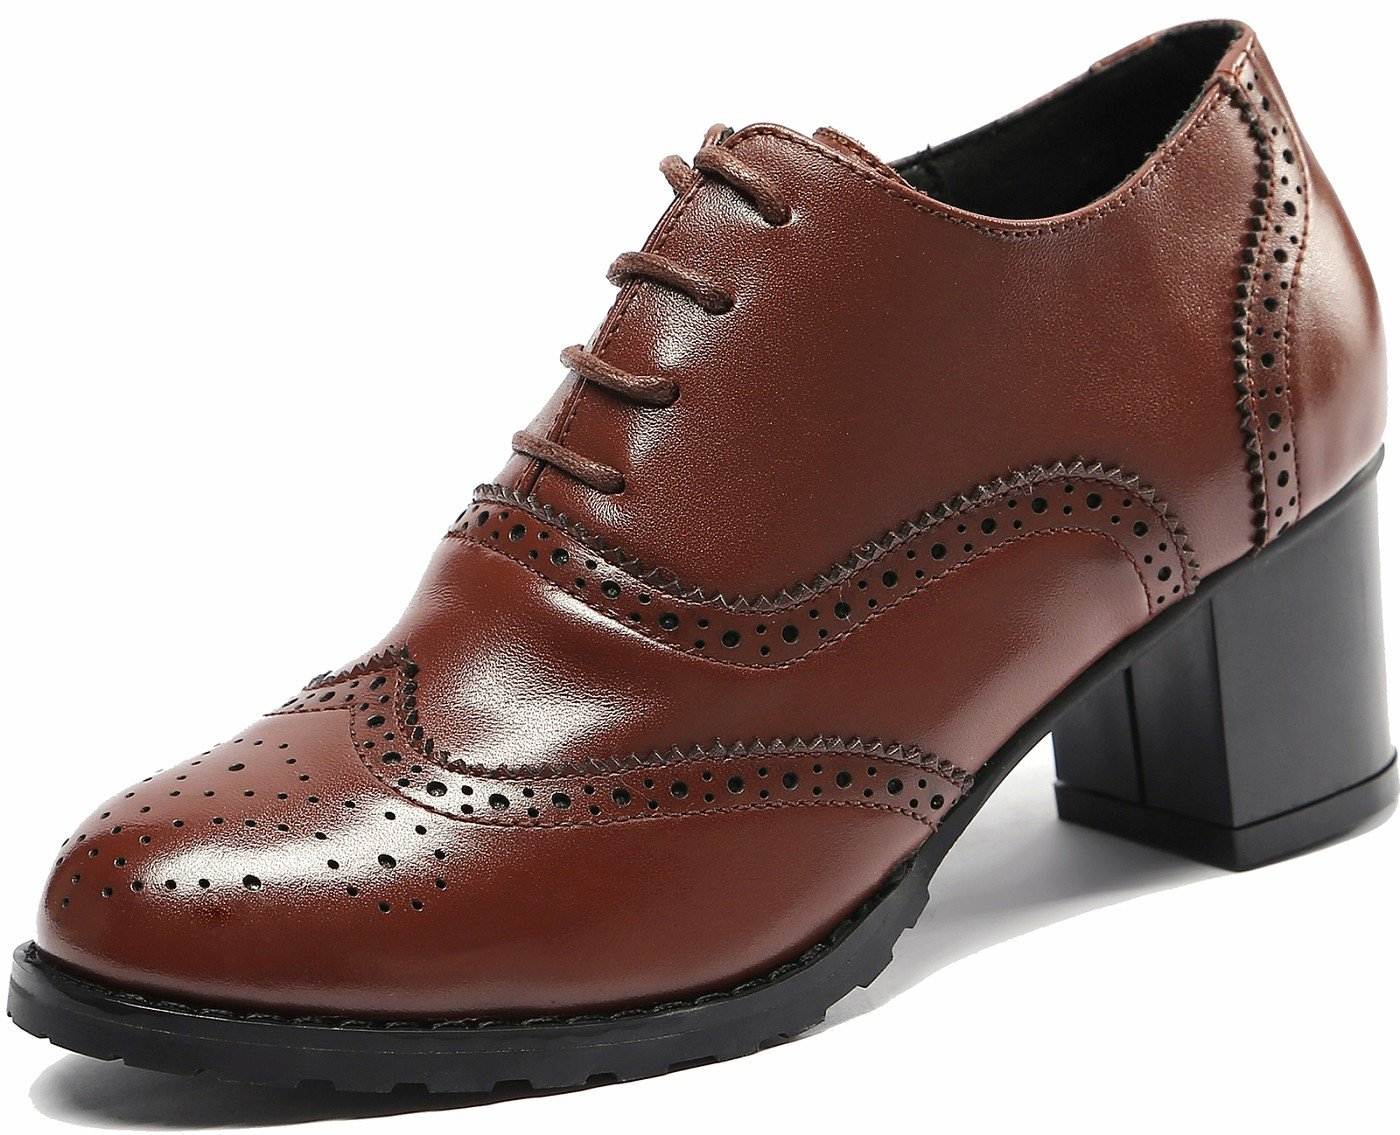 U-lite Women's Brown Perforated Lace-up Wingtip Leather Pump Oxfords Vintage Oxford Shoe Brown 7